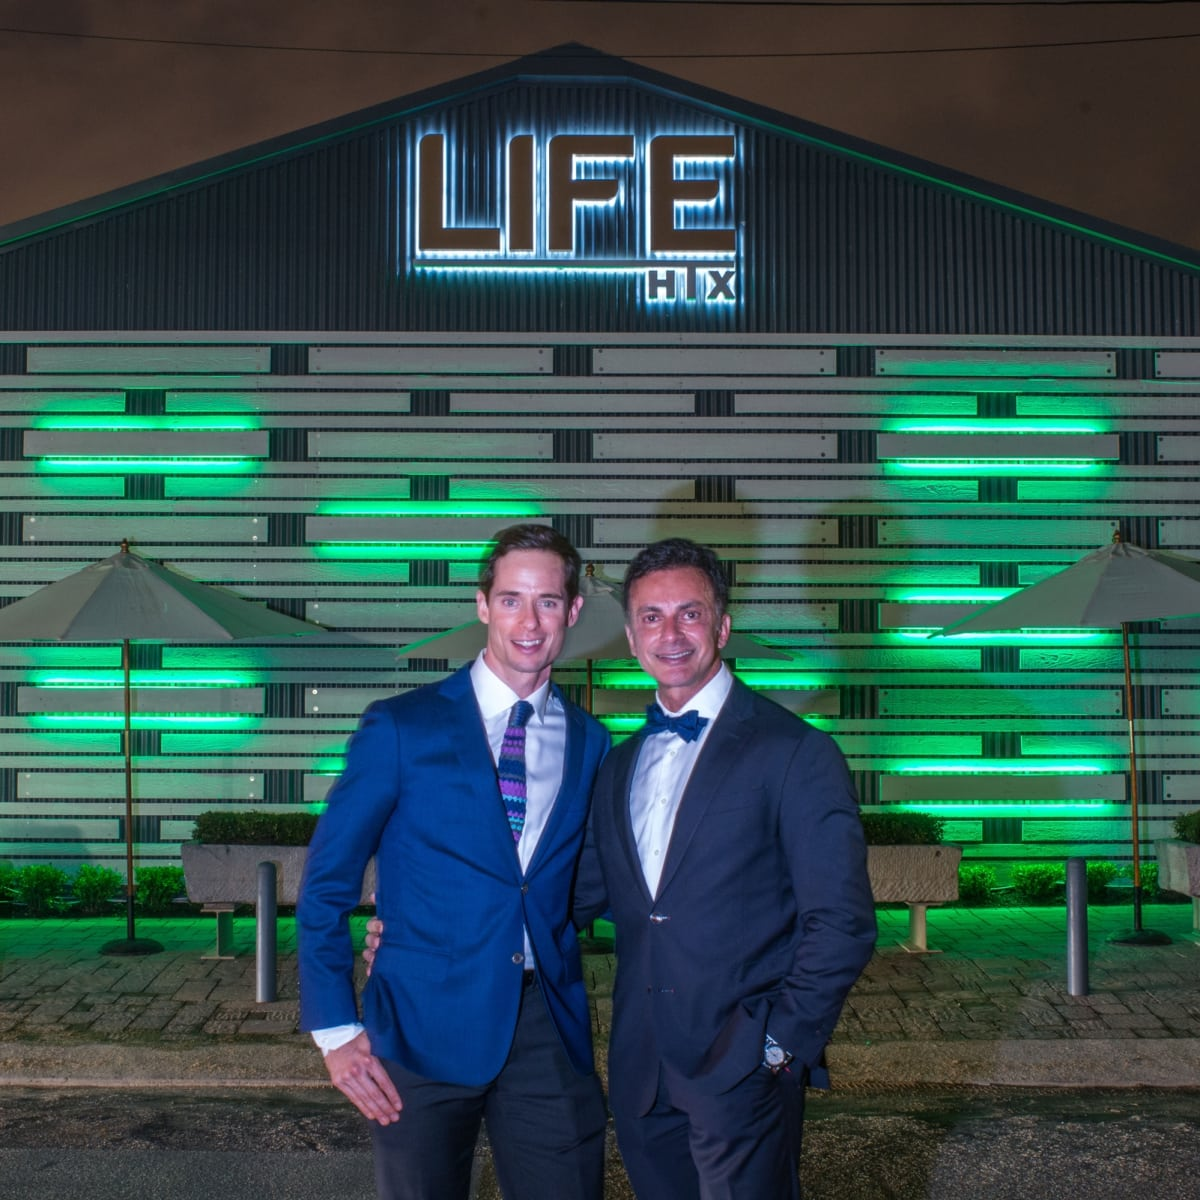 LIFE htx opeing 5/16  Henry Richardson, Monsour Taghdisi